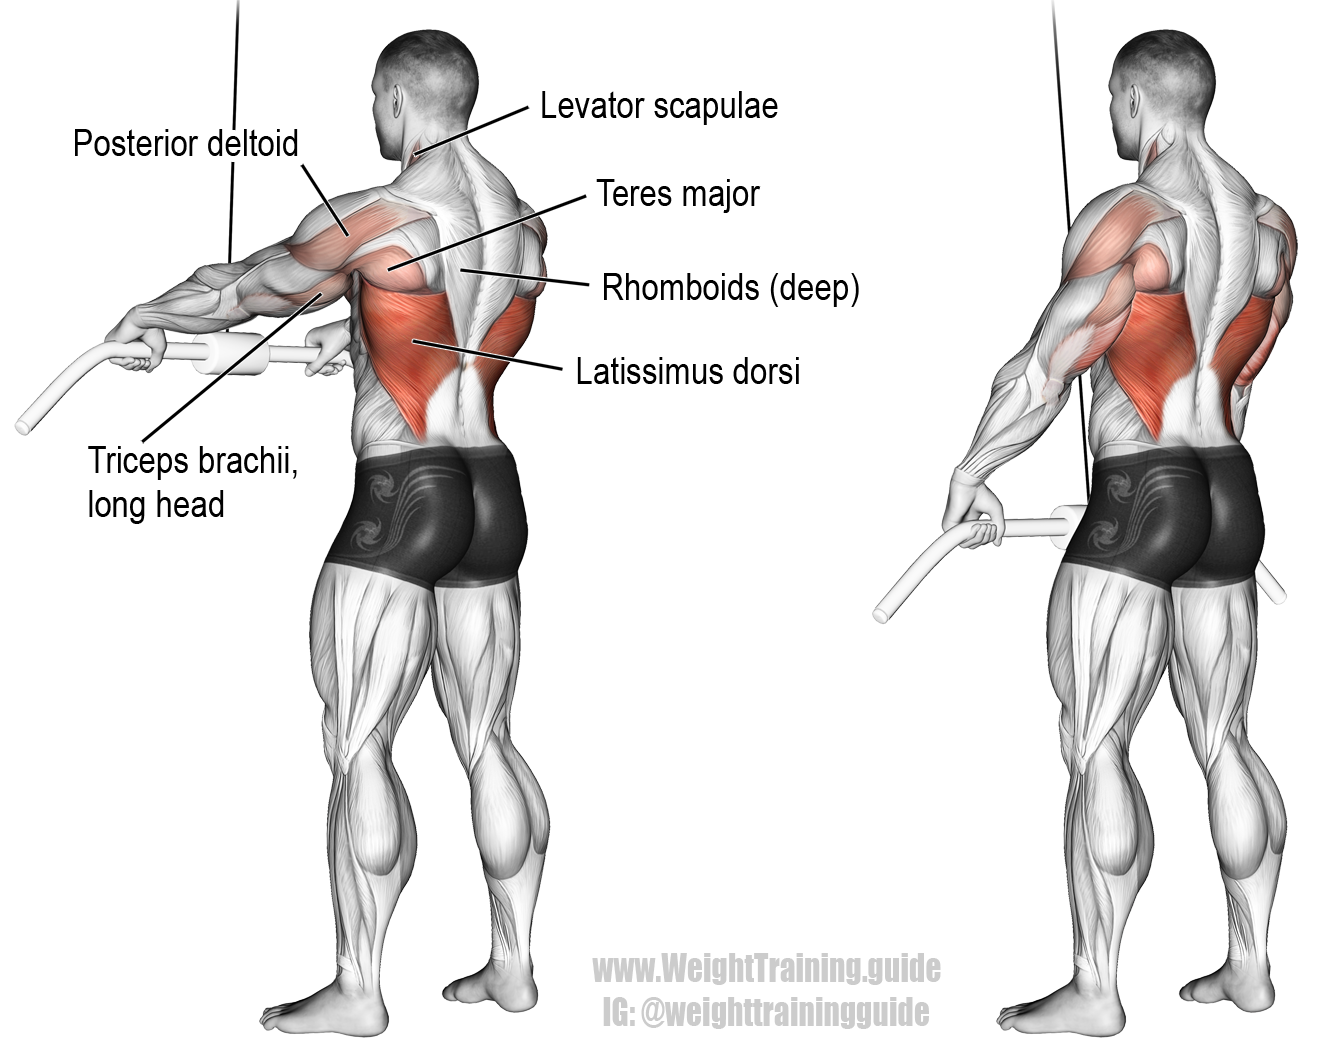 Cable Straight Arm Pull Down Exercise Instructions And Video